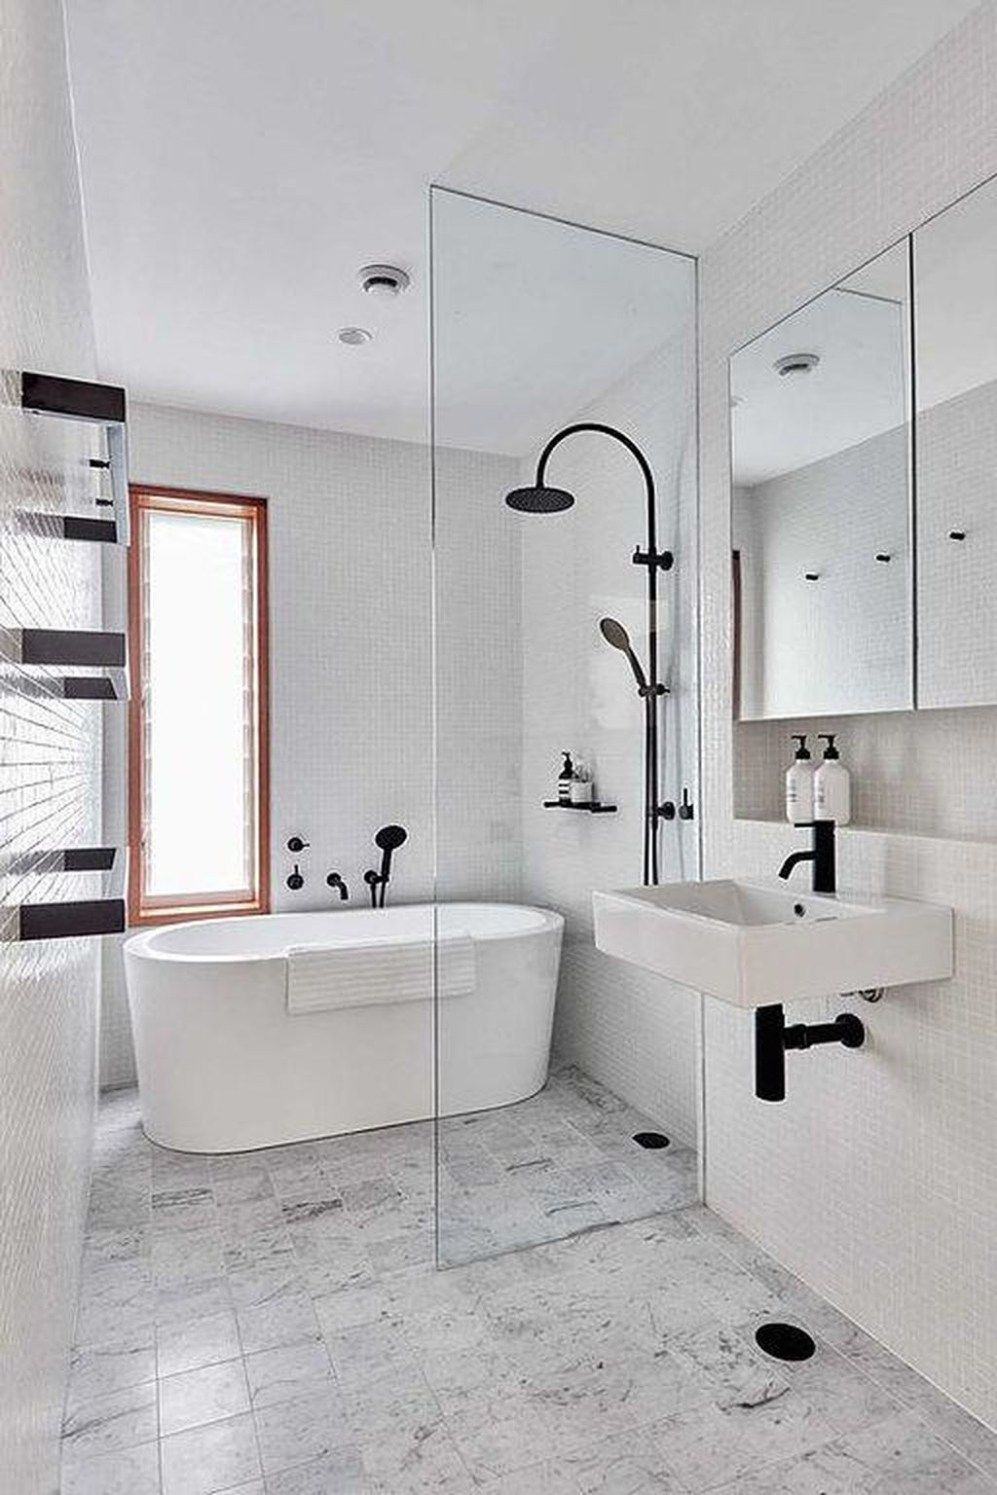 32 Perfect Color Combination For Your Bathroom Design Buildehome Bathroom Renovations Perth Small Bathroom Remodel Bathroom Inspiration